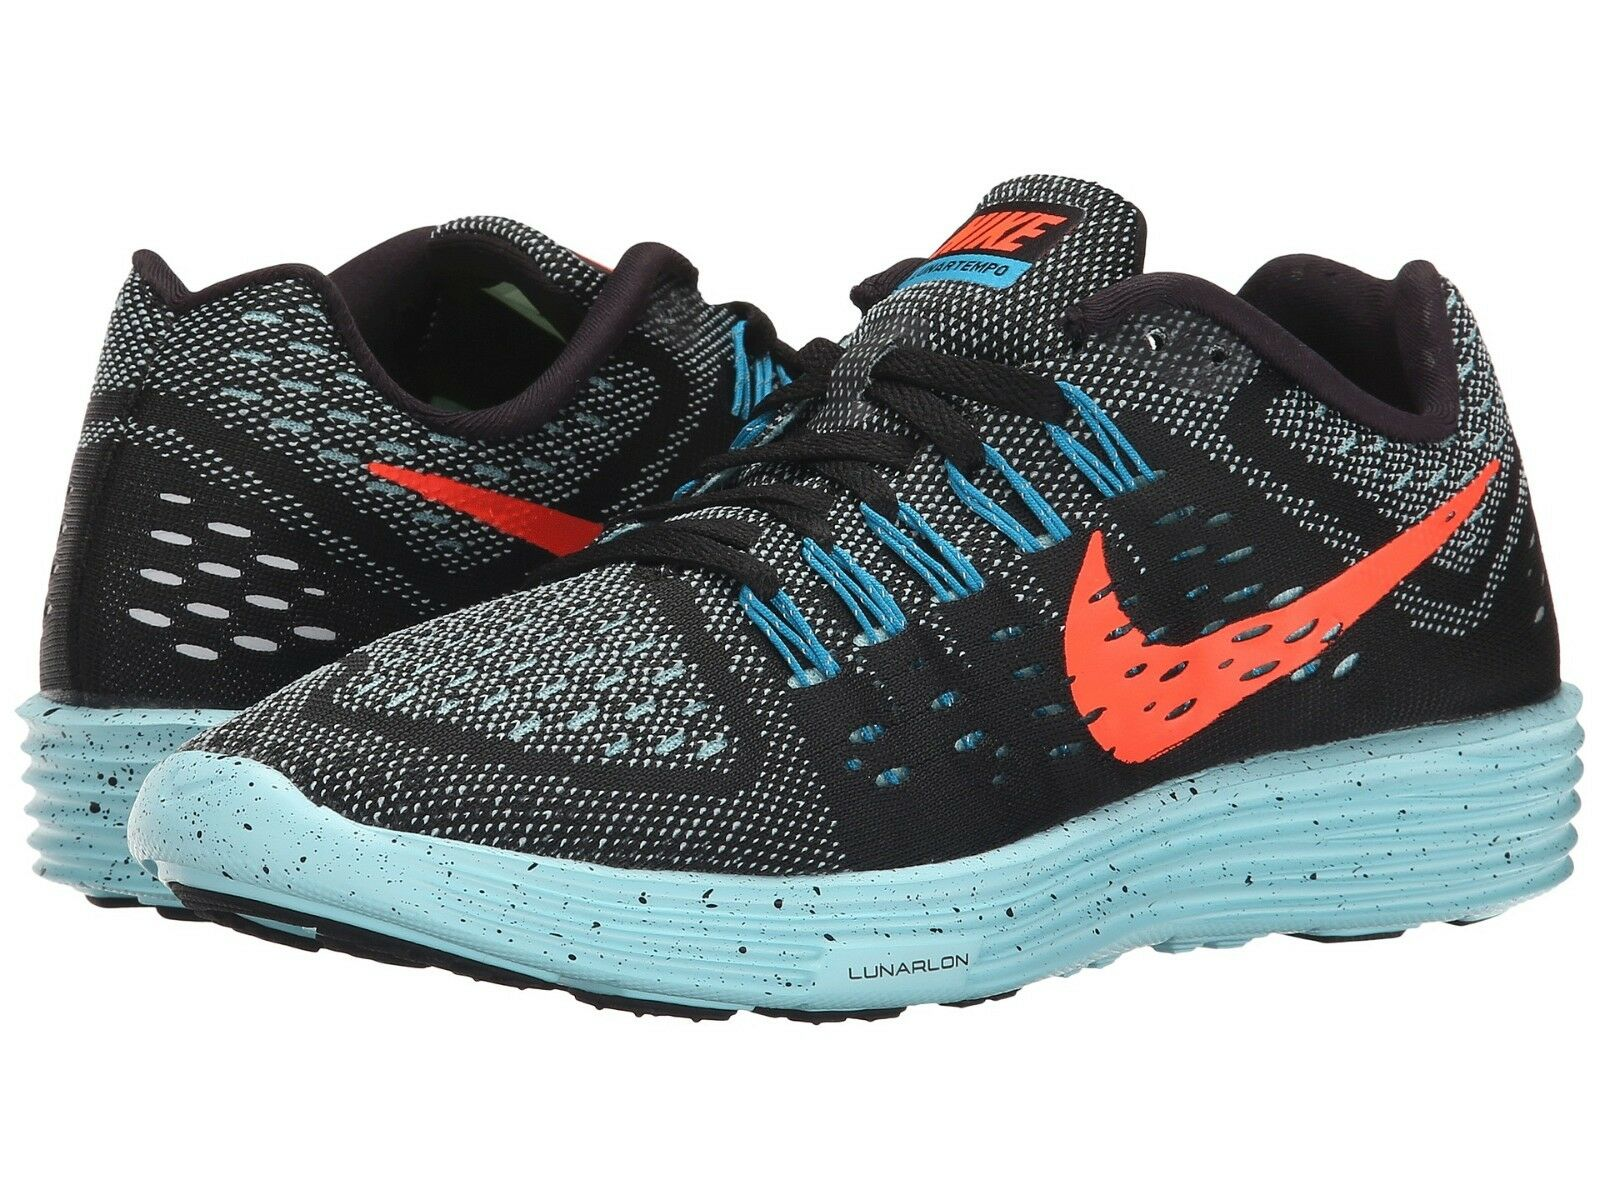 Women's Nike LunarTempo Running Shoes, 705462 006 Comfortable The most popular shoes for men and women